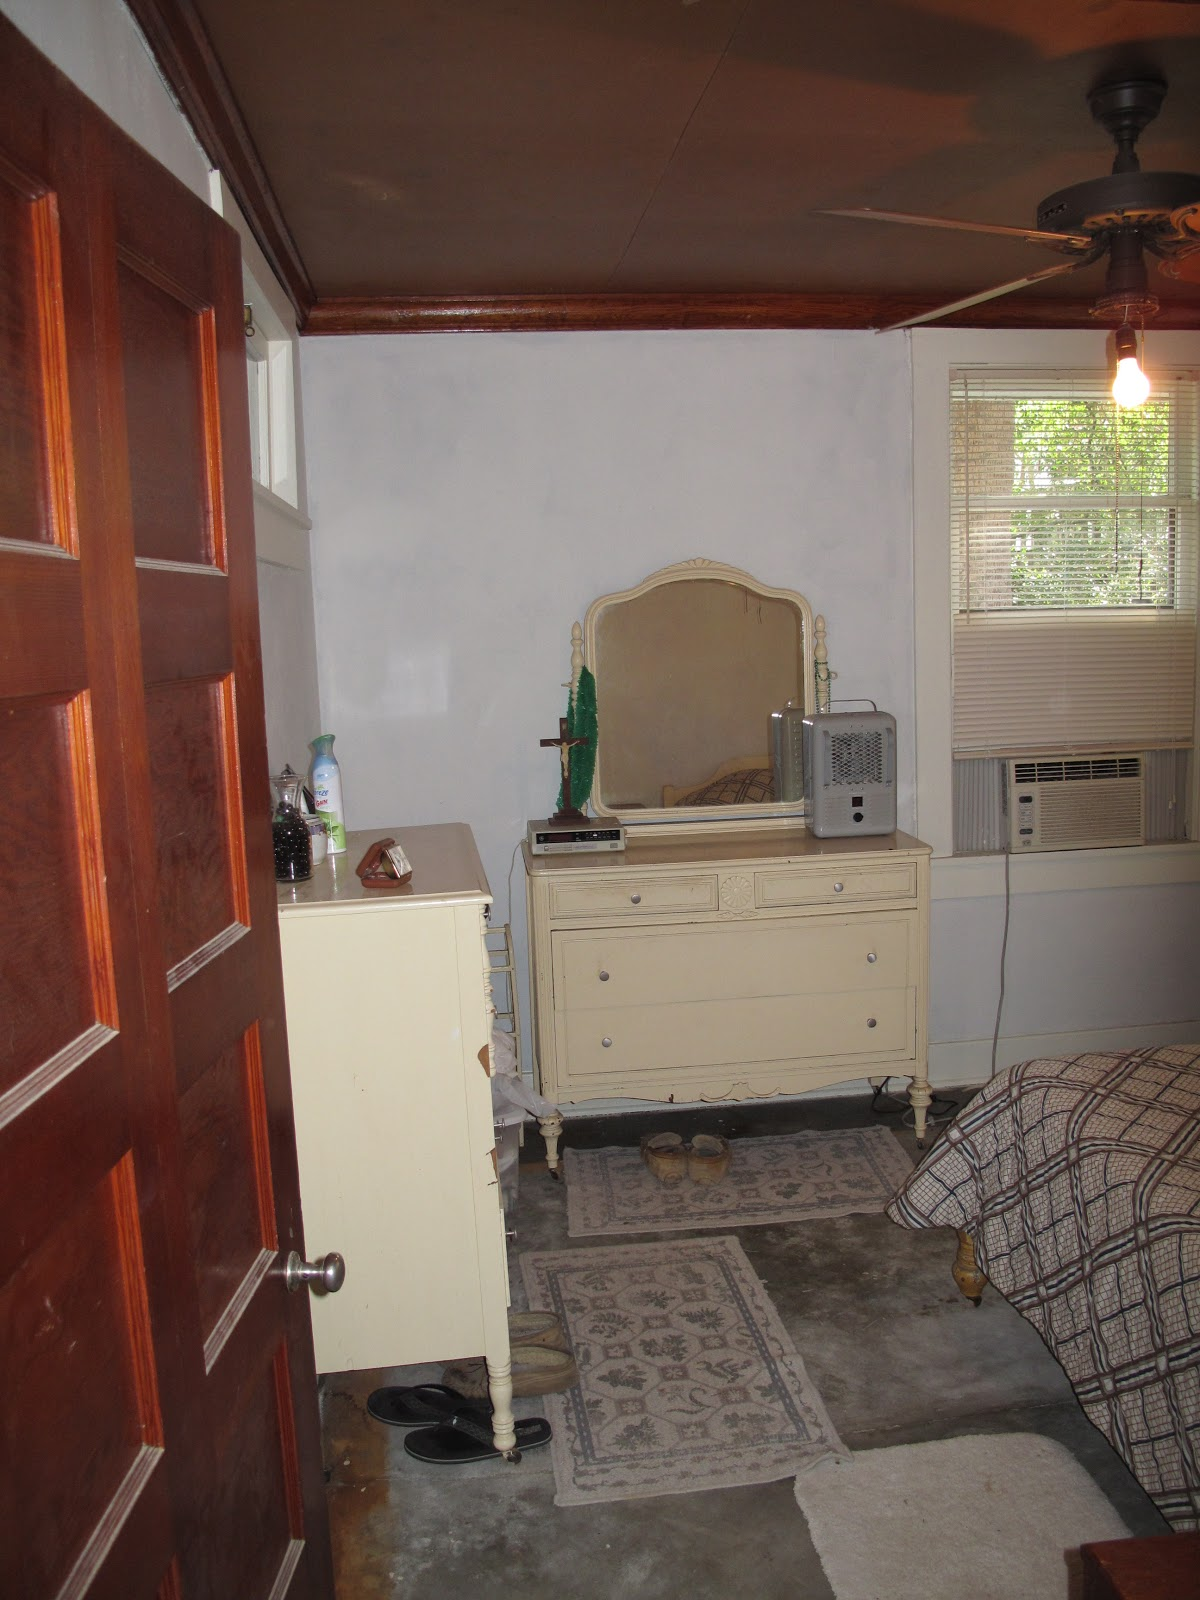 Very Vicky Coral Cottage Master Bedroom Redo Rewiring An Old House Plaster Walls The Furniture Was Saved And Given A Facelift With Paint After Room Cement Were Covered Drywall